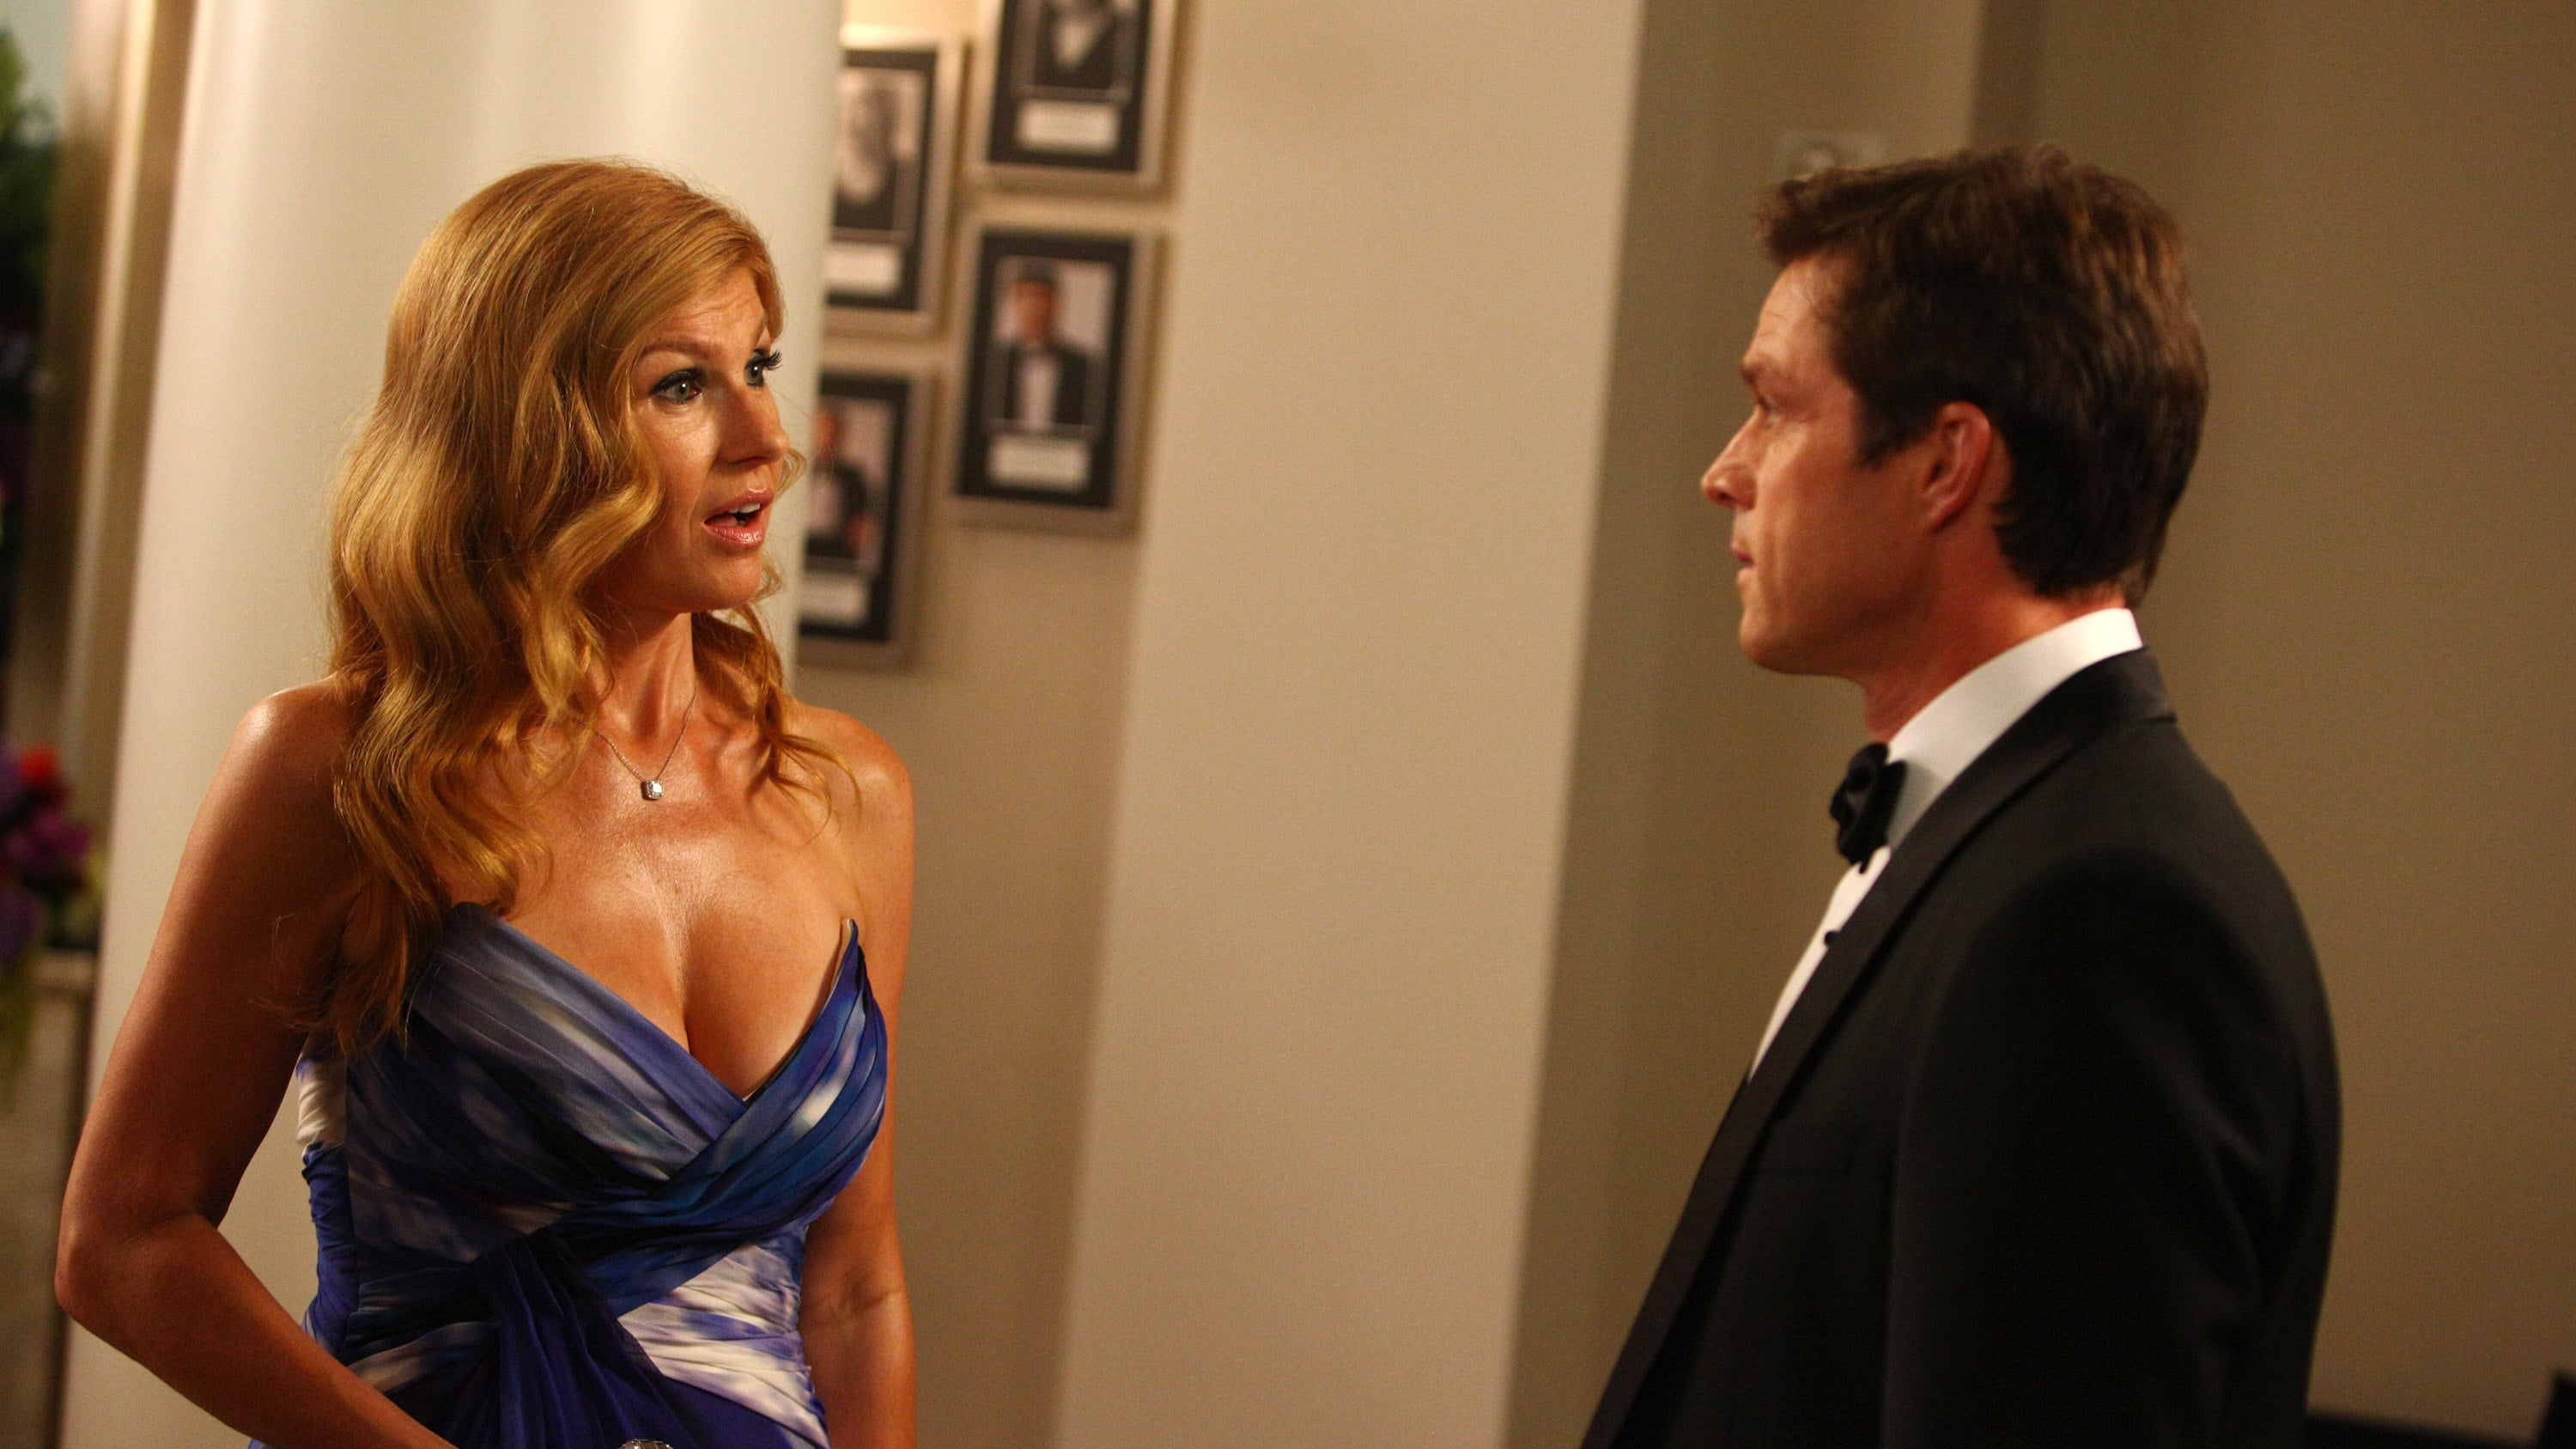 Nashville - Season 2 Episode 4 : You're No Angel Yourself